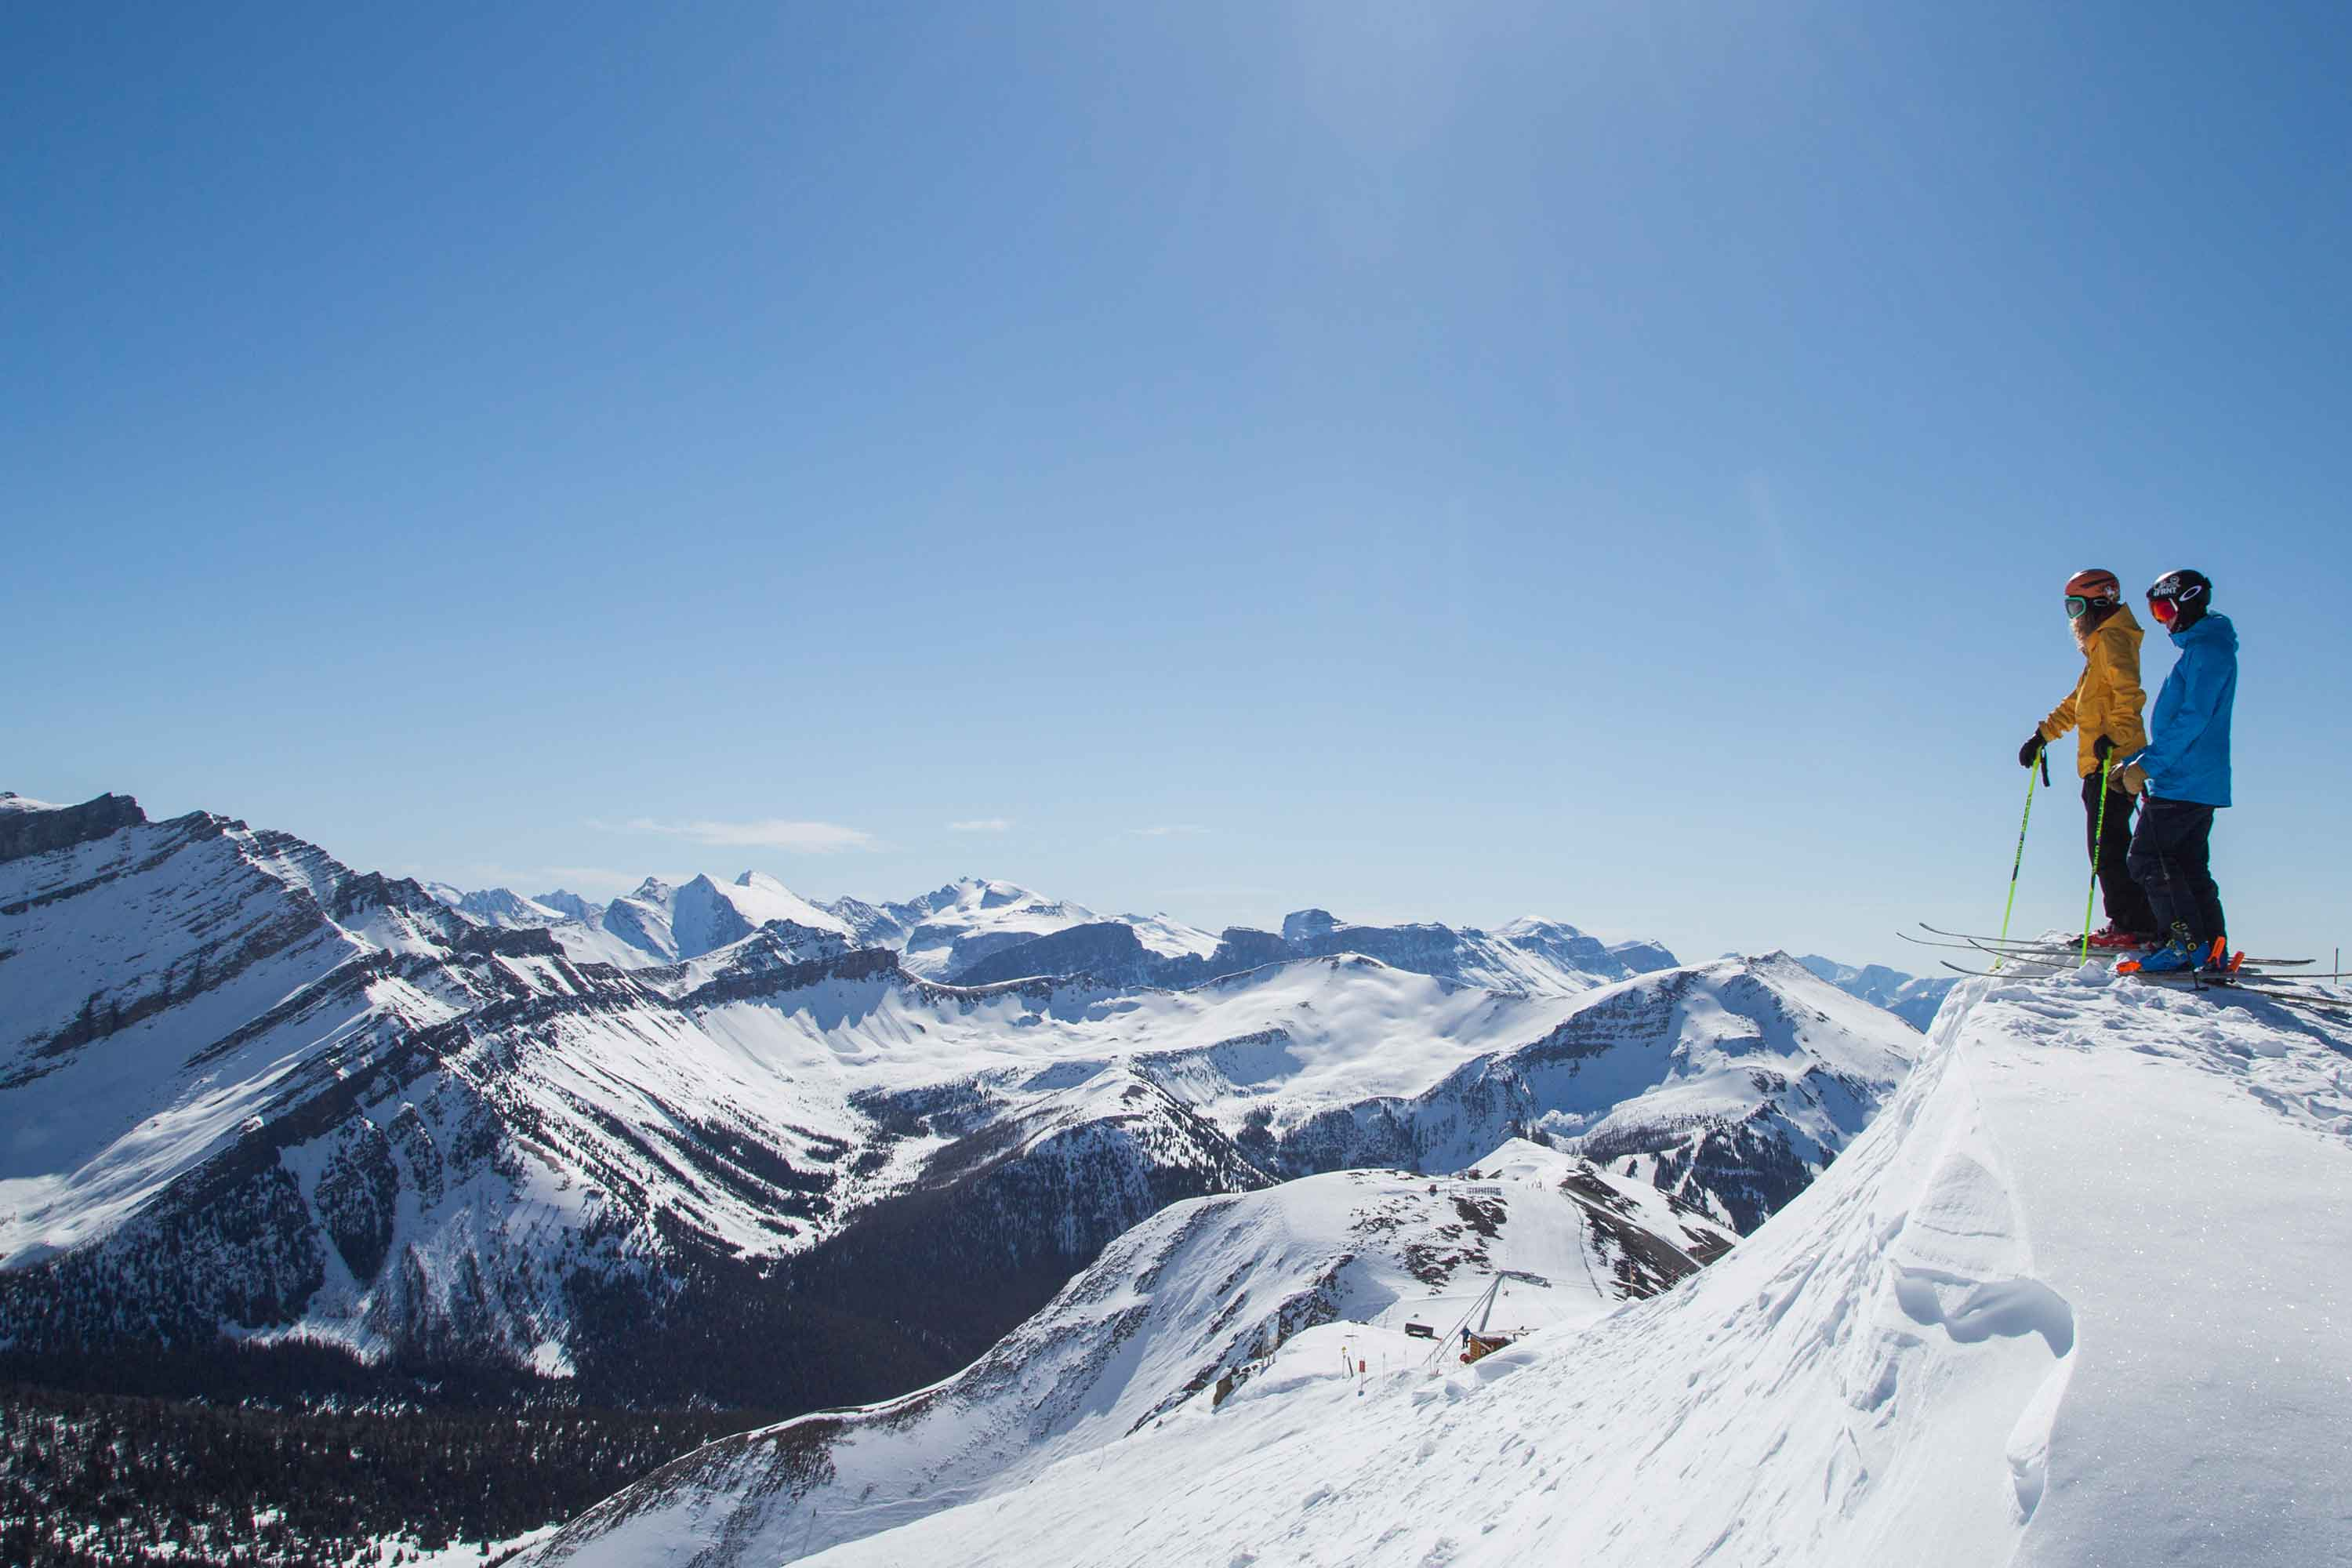 Ski holiday package to ski Banff and Lake Louise Canada